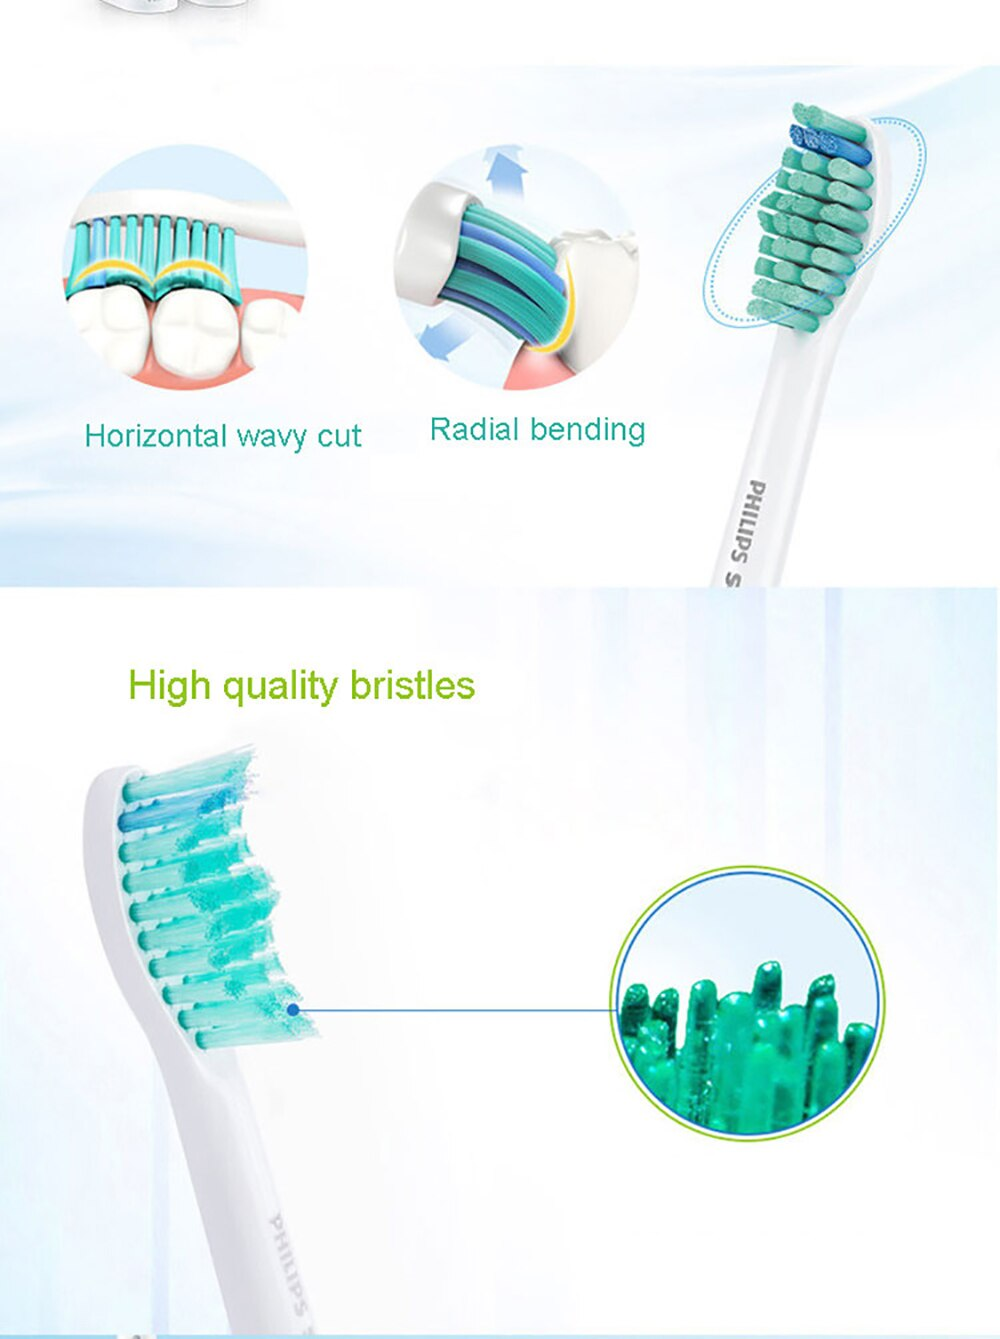 Philips HX3216 Sonicare Electric Toothbrush with Easy Click-On Brush Heads and Light Shows Battery Status for Aduls Rechargeable